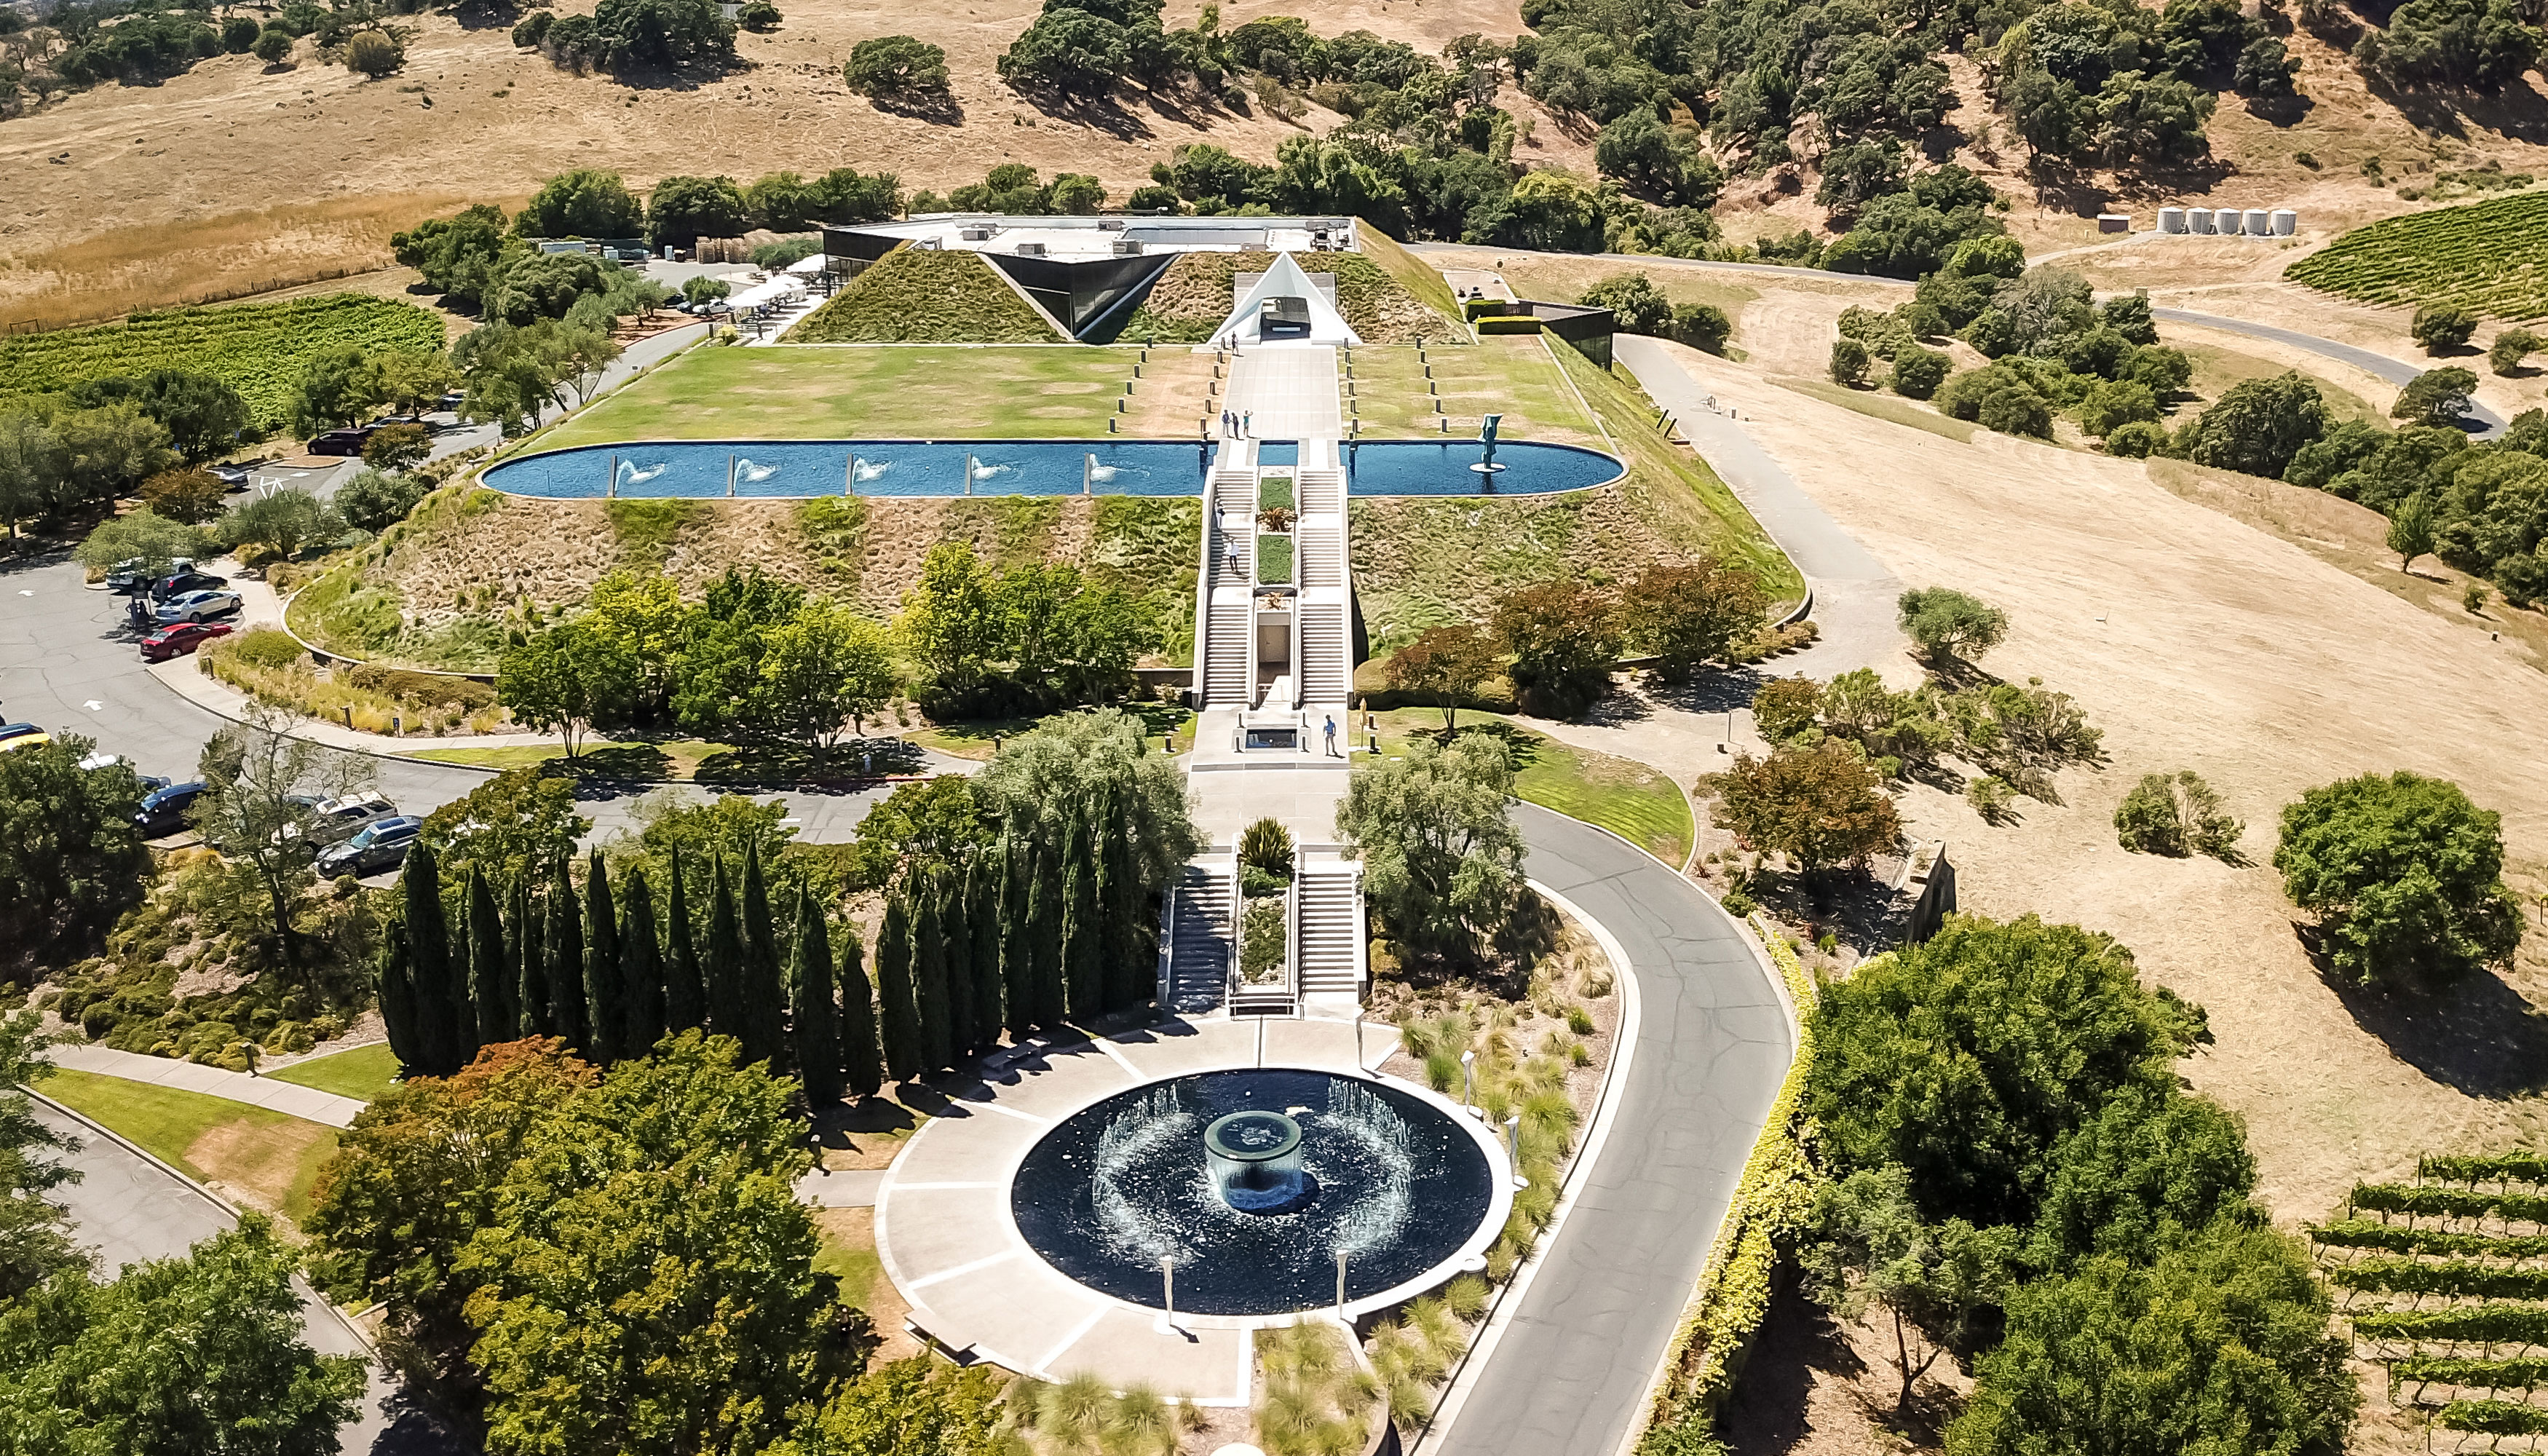 An aerial view of a winery with trees, a fountain, vineyards and rolling hills.